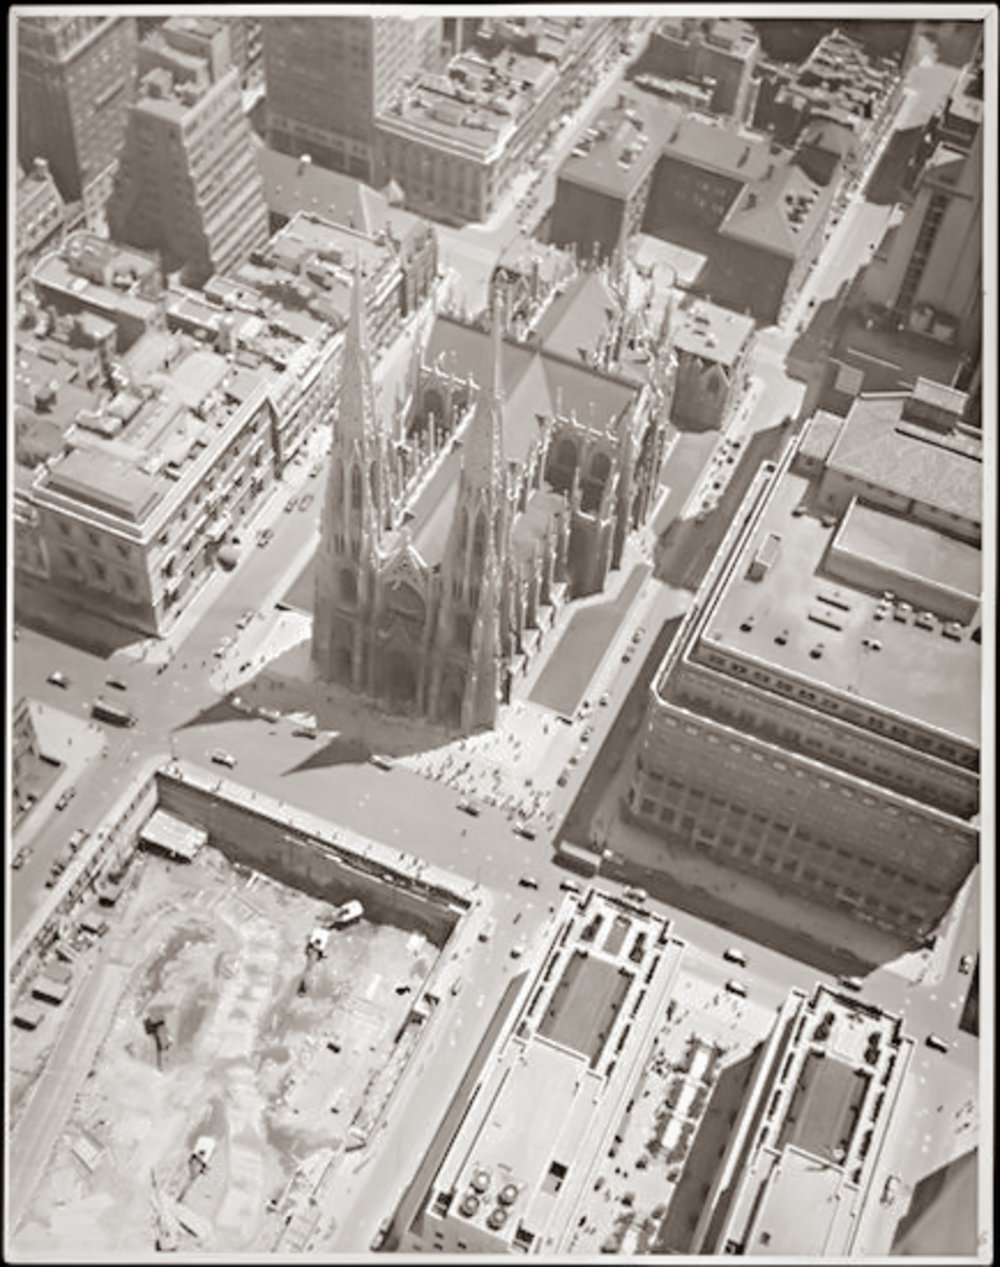 Aerial view of St. Patrick's Cathedral and International Building (Rockefeller Plaza) under construction. (Image: John Albok / 1894-1982)